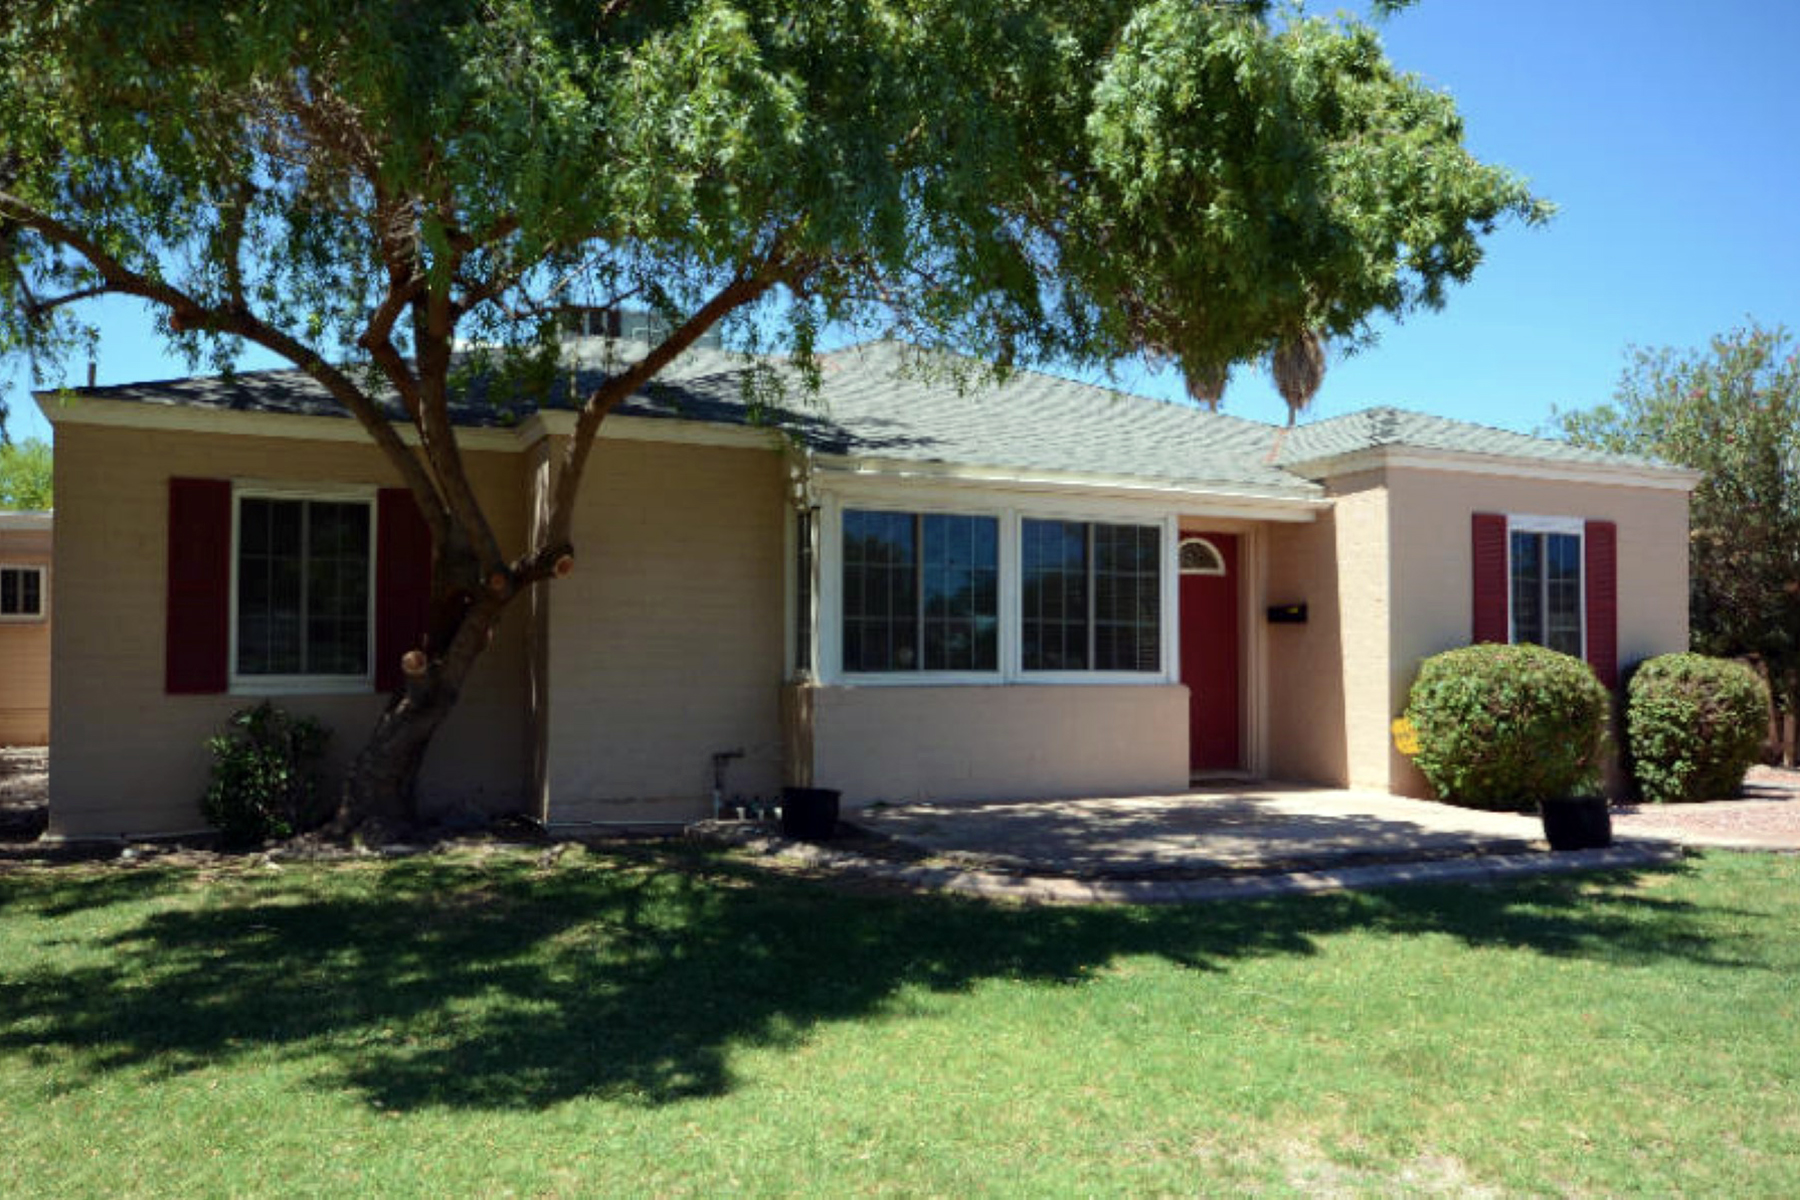 Single Family Home for Sale at Charming Home in Willo Historic District on 1/4 Acre Lot 546 W Lewis Ave Phoenix, Arizona 85003 United States